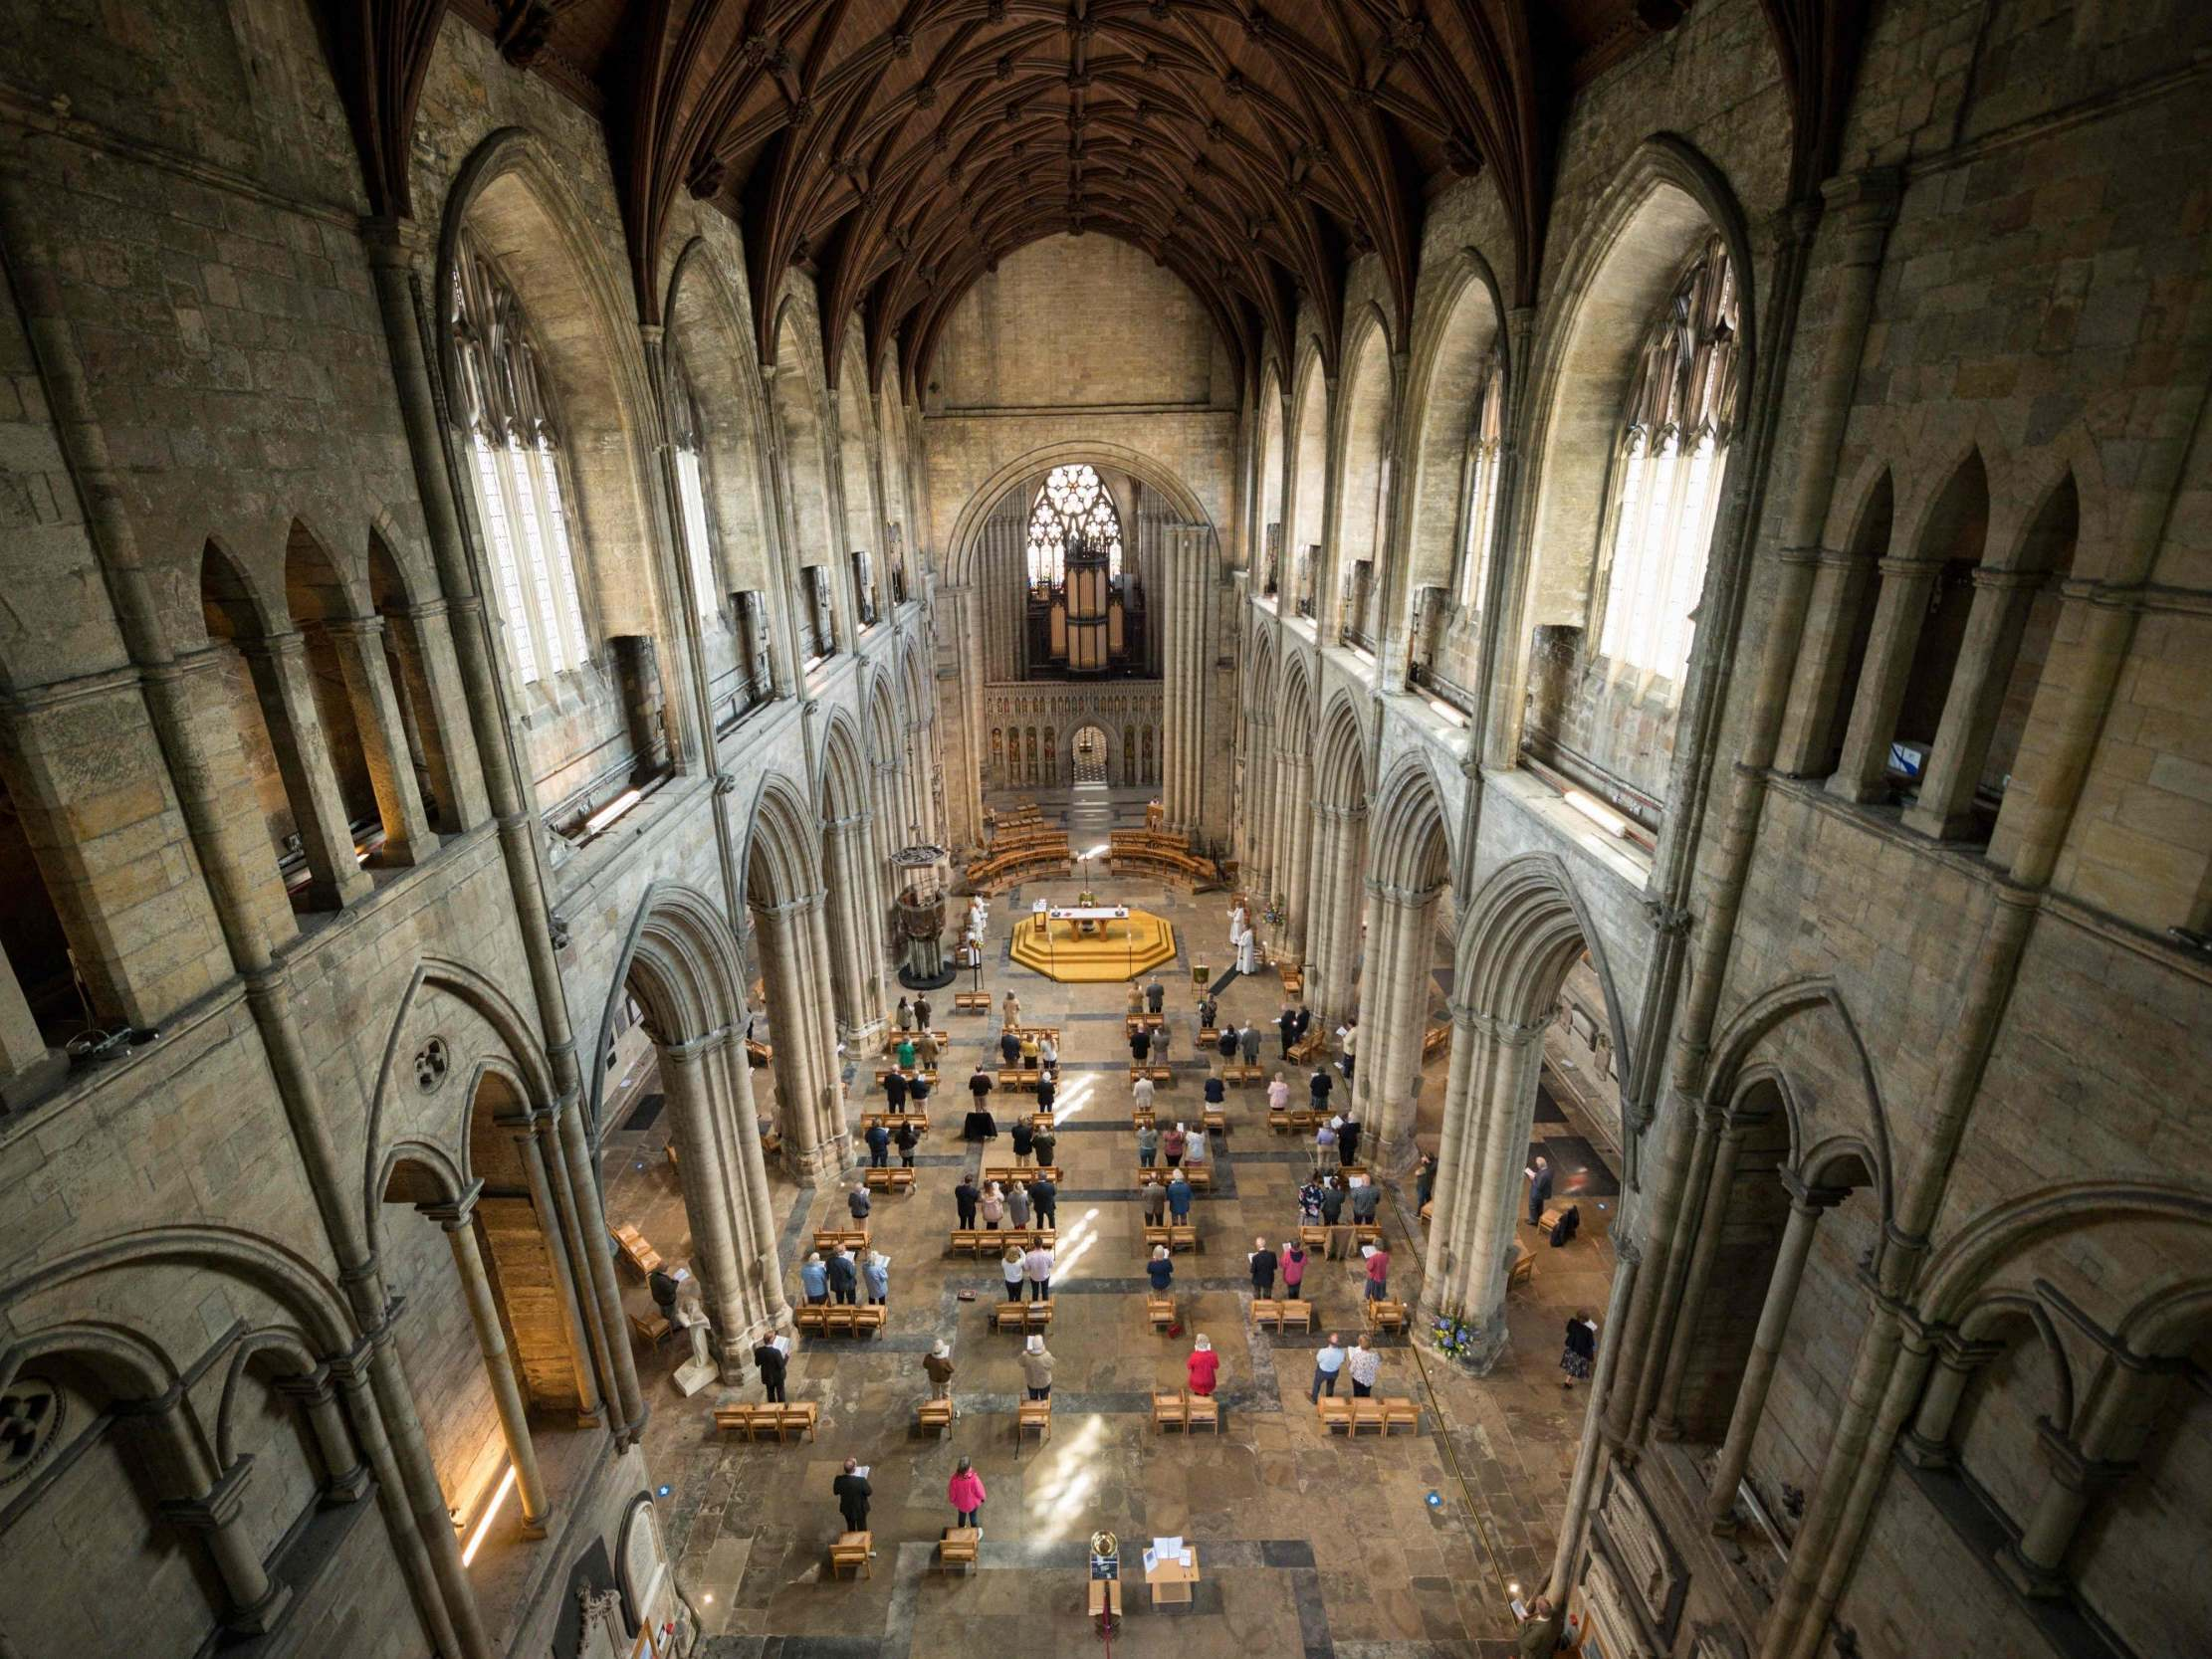 Churches in England reopen for Sunday service